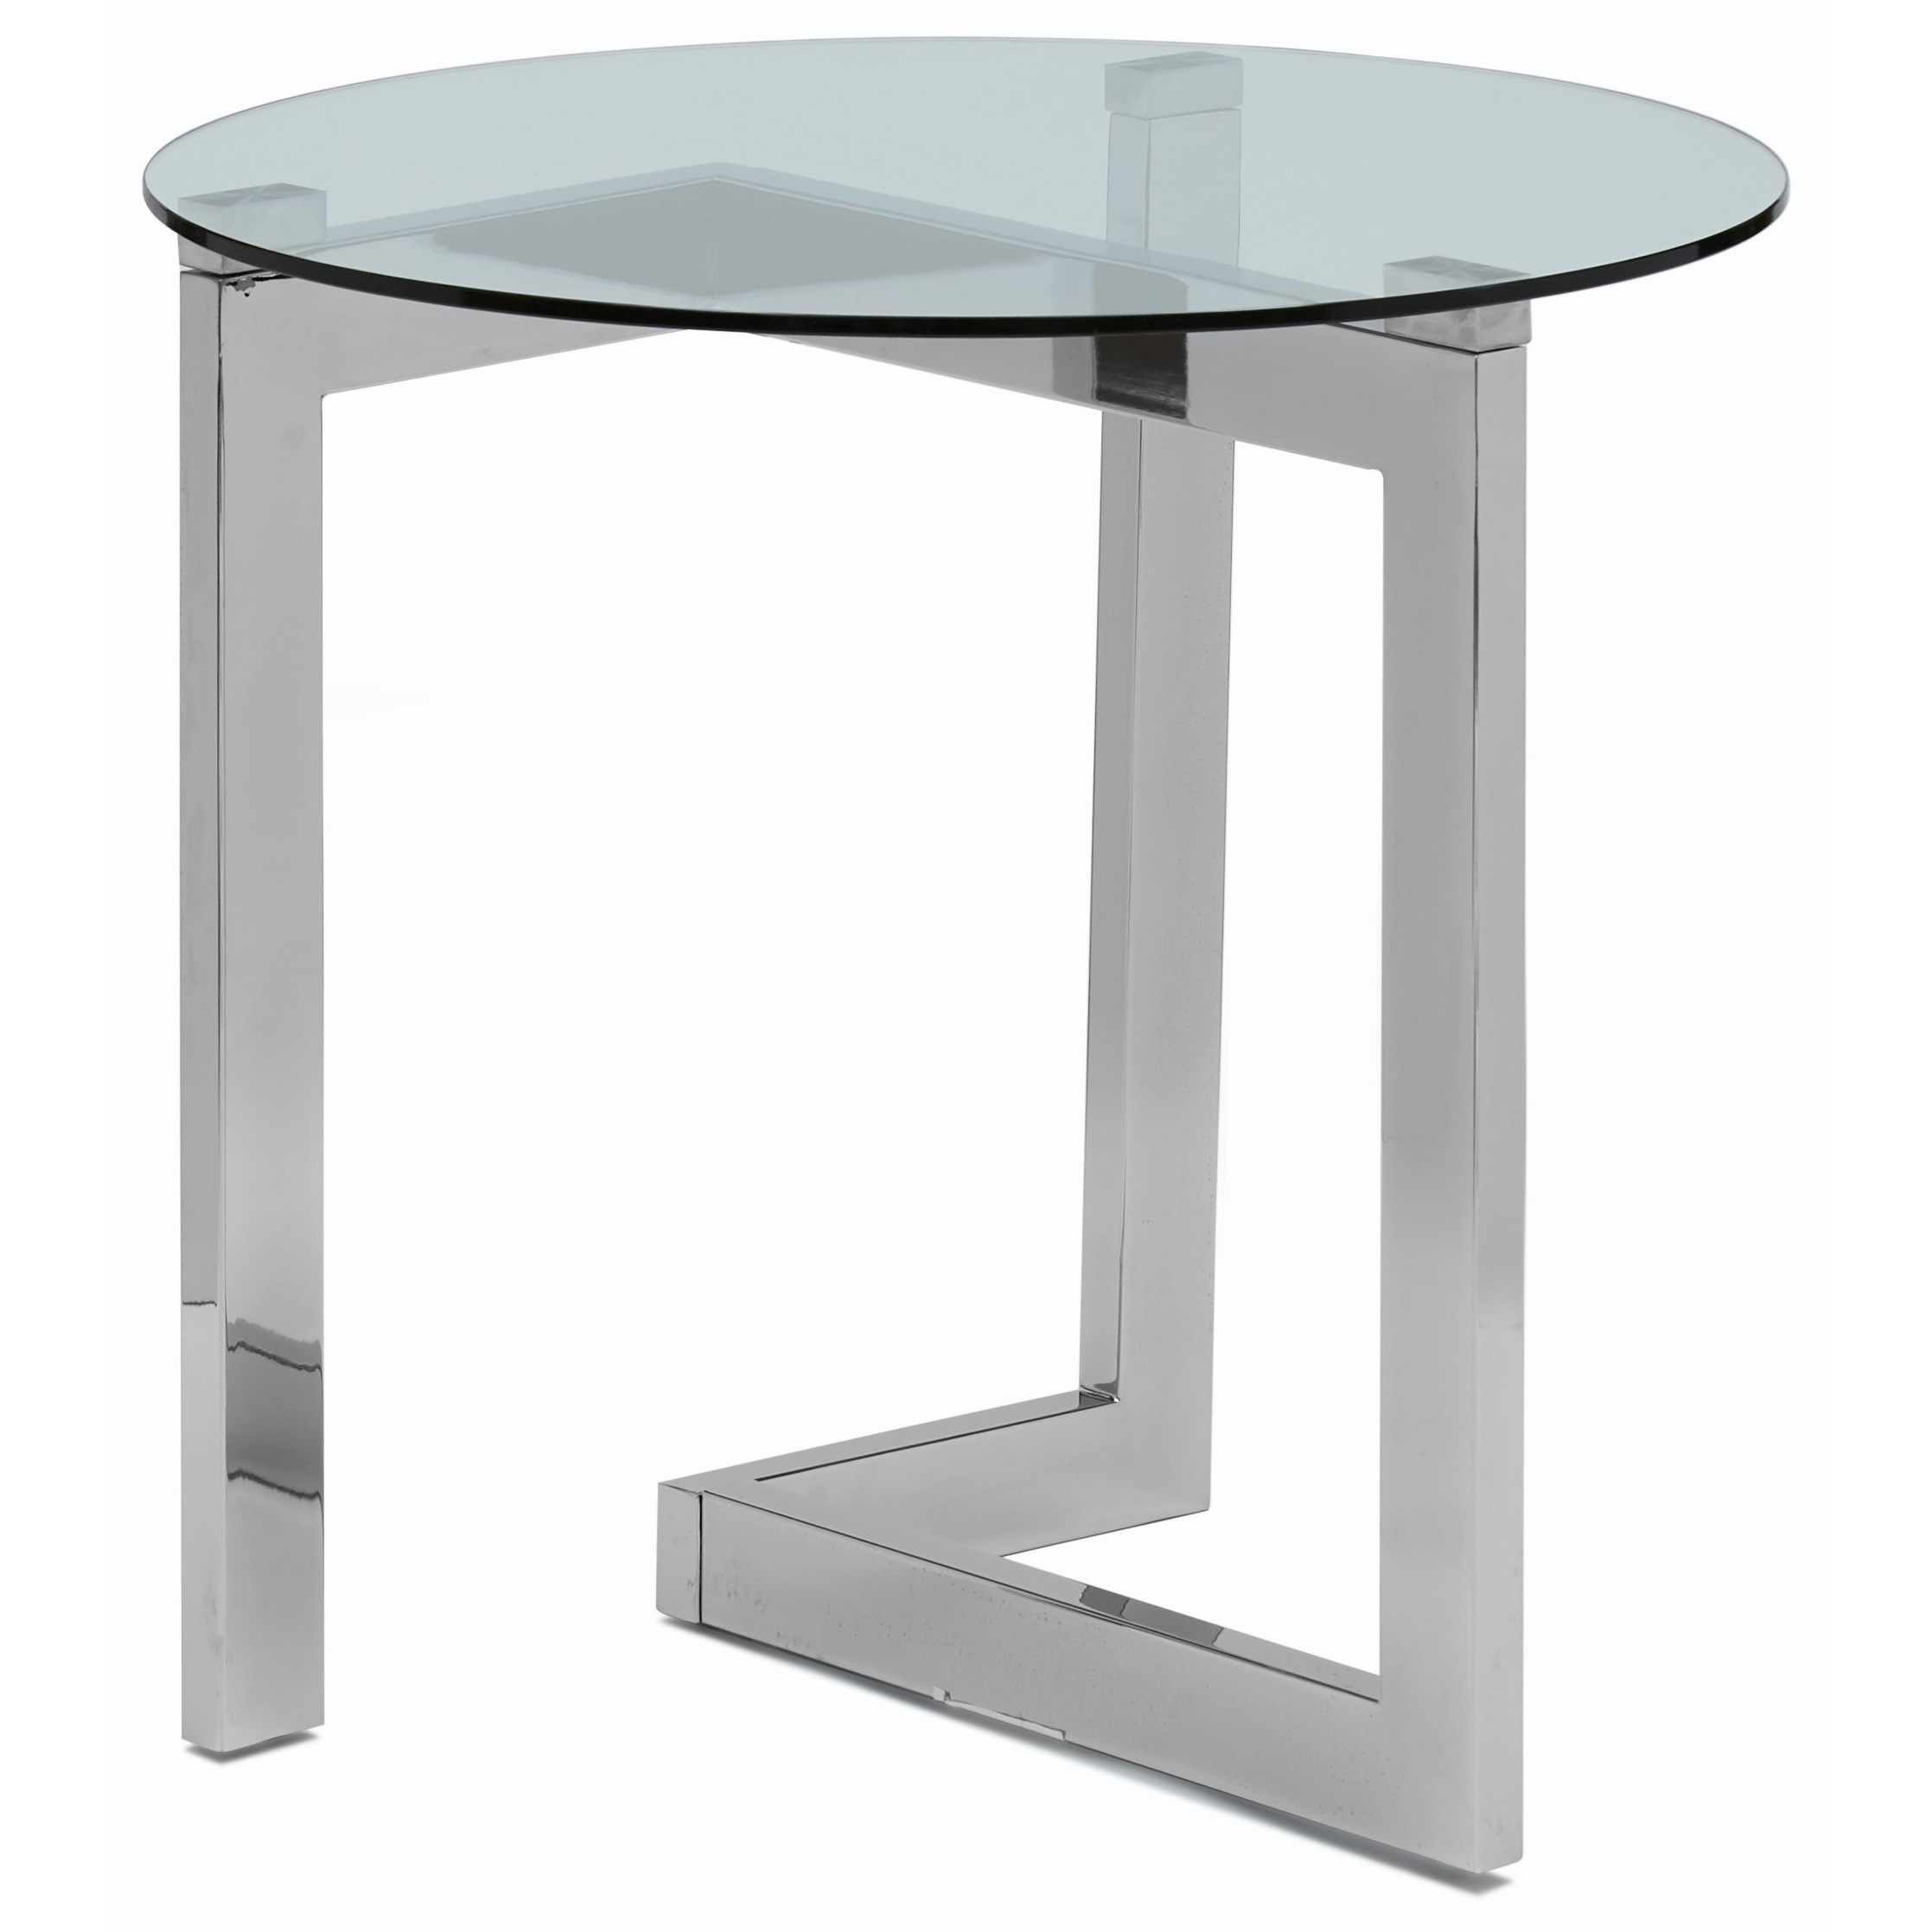 Aries Round End Table by Magnussen Home at Bullard Furniture